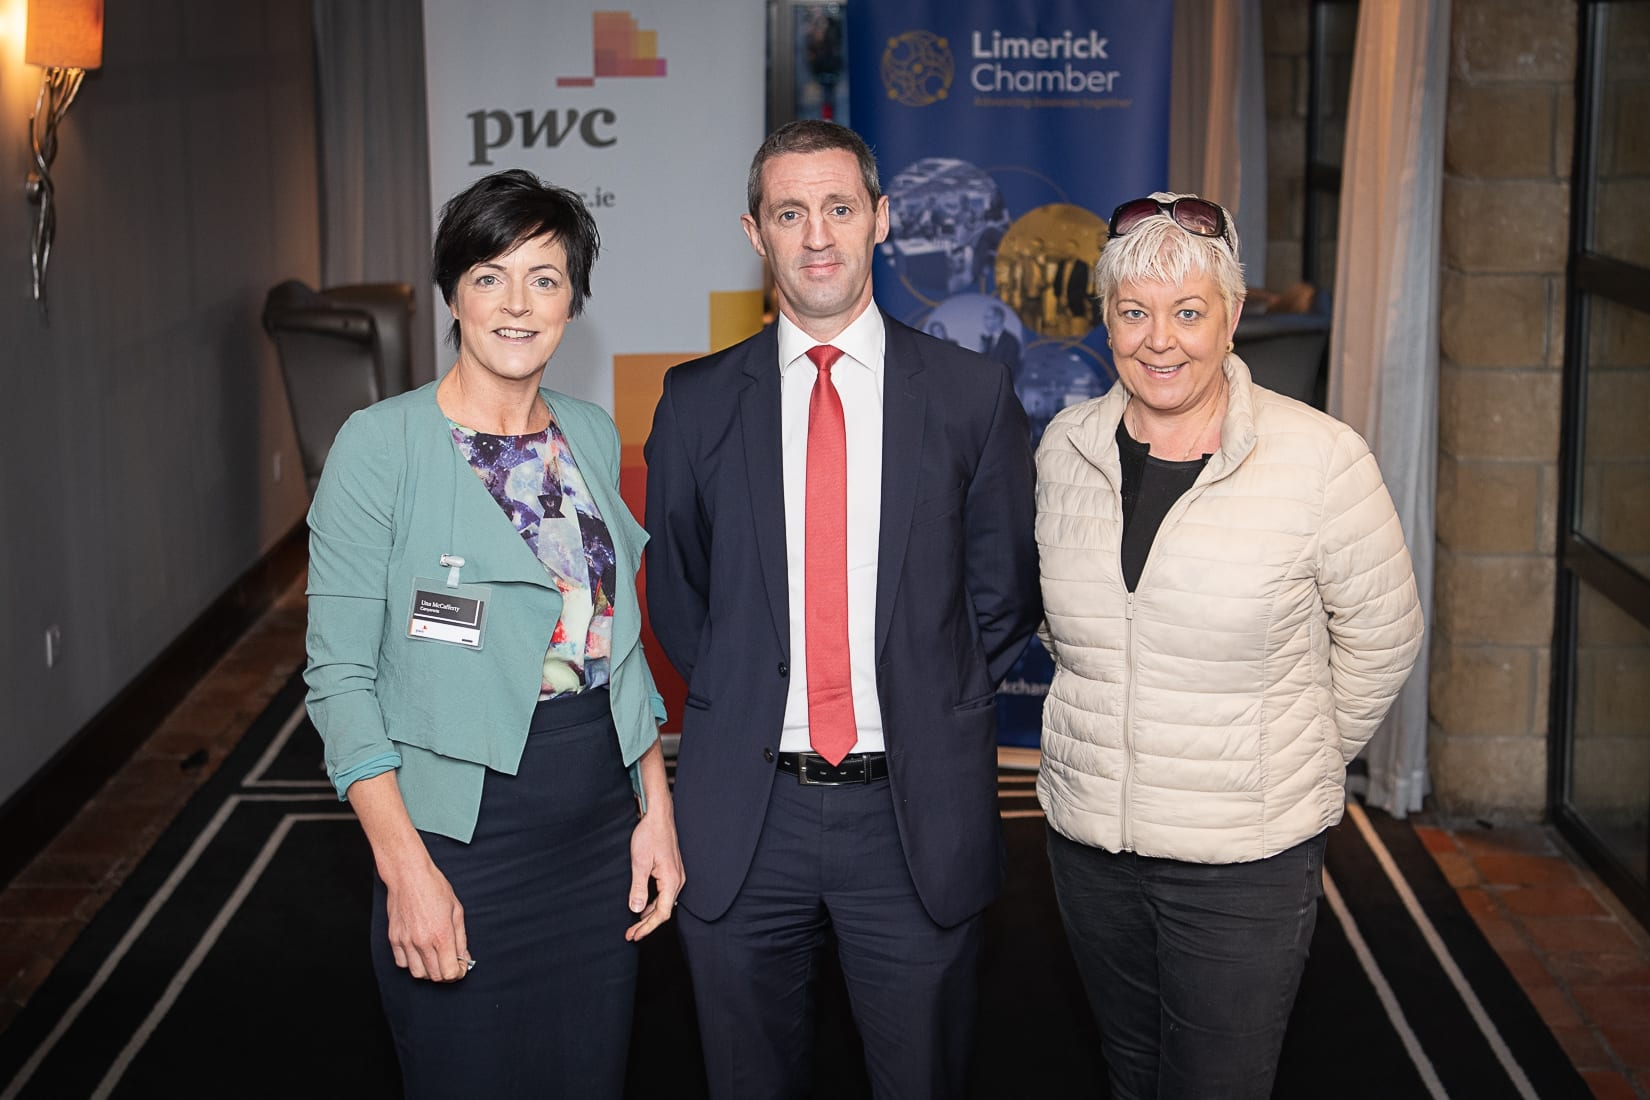 PWC Budget Breakfast in association with the Limerick Chamber which took place in the Castletroy Park Hotel on 9th October 2019, from left to right: Úna McCafferty- Canyon CTS, Kieran Considine - AIB, Mavourneen Kilkenny- Novostrat  Photo by Morning Star Photography